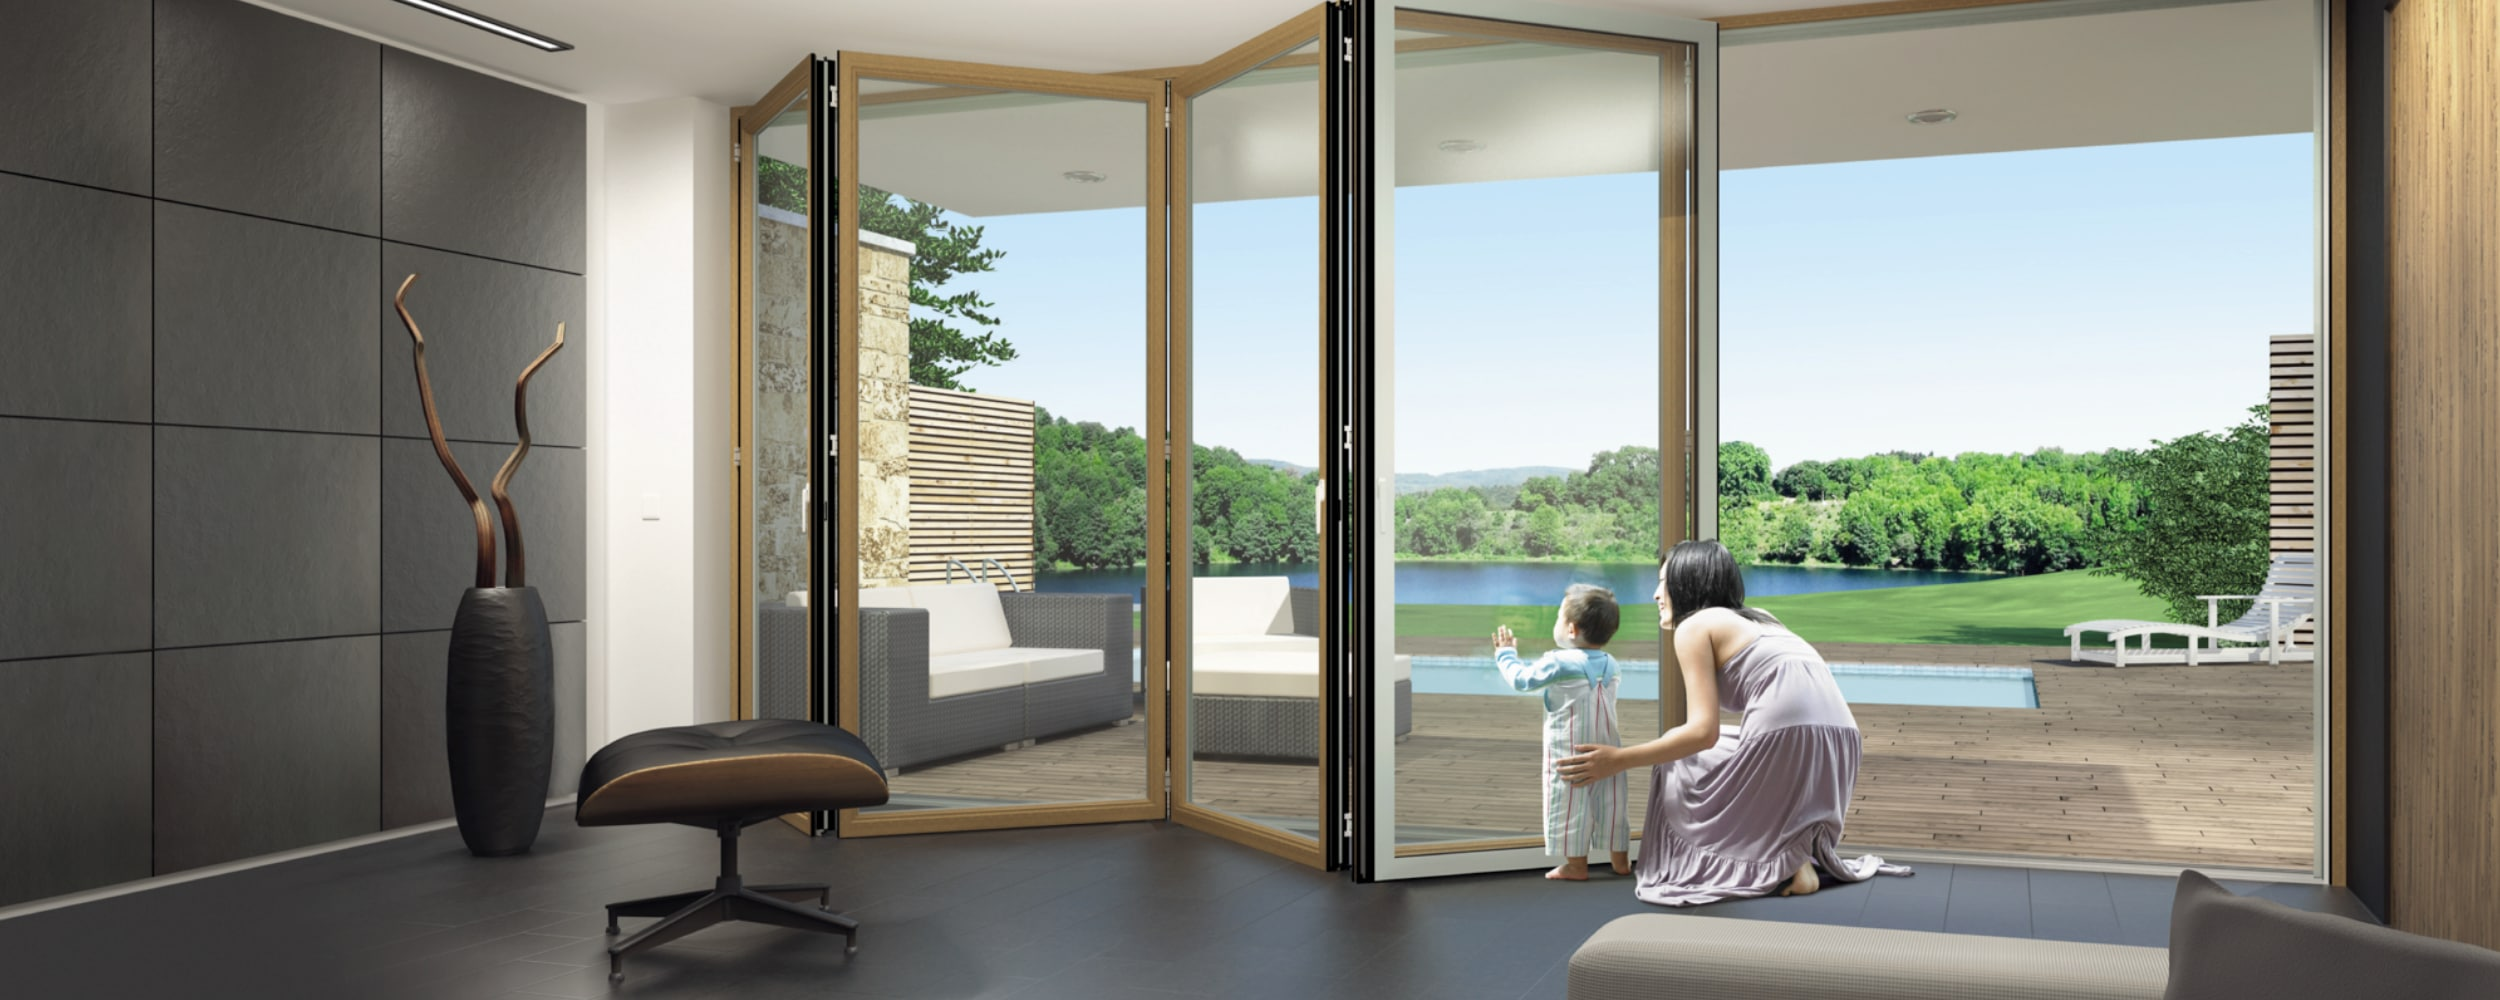 Composite bifold door with beautiful view